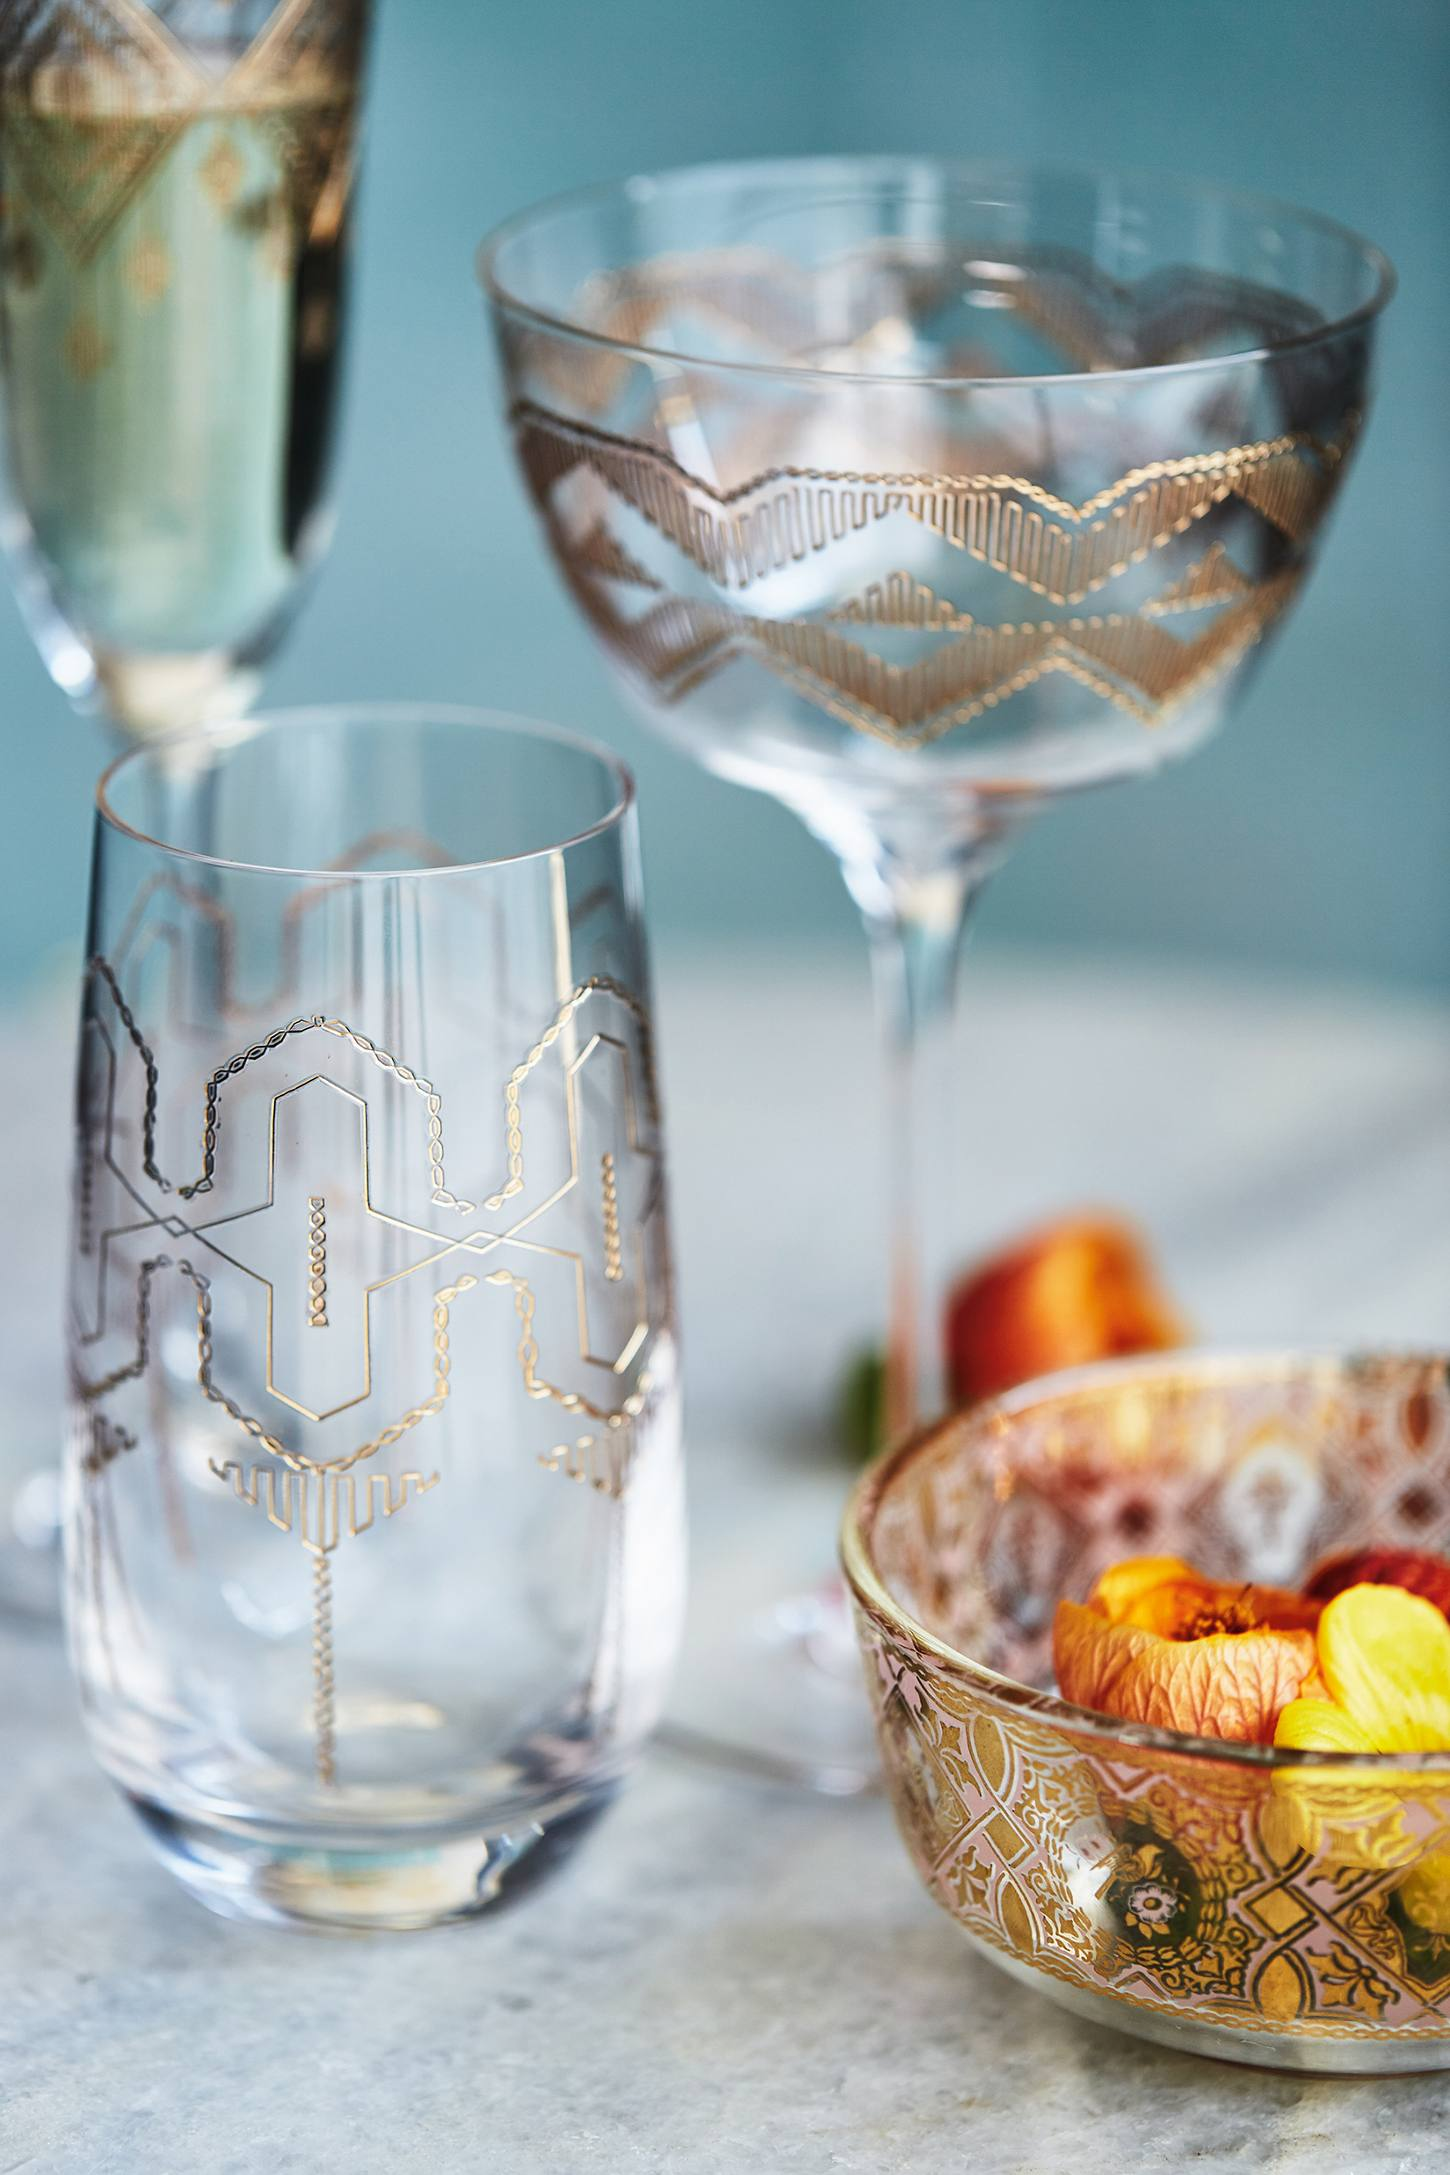 Barware from Anthropologie